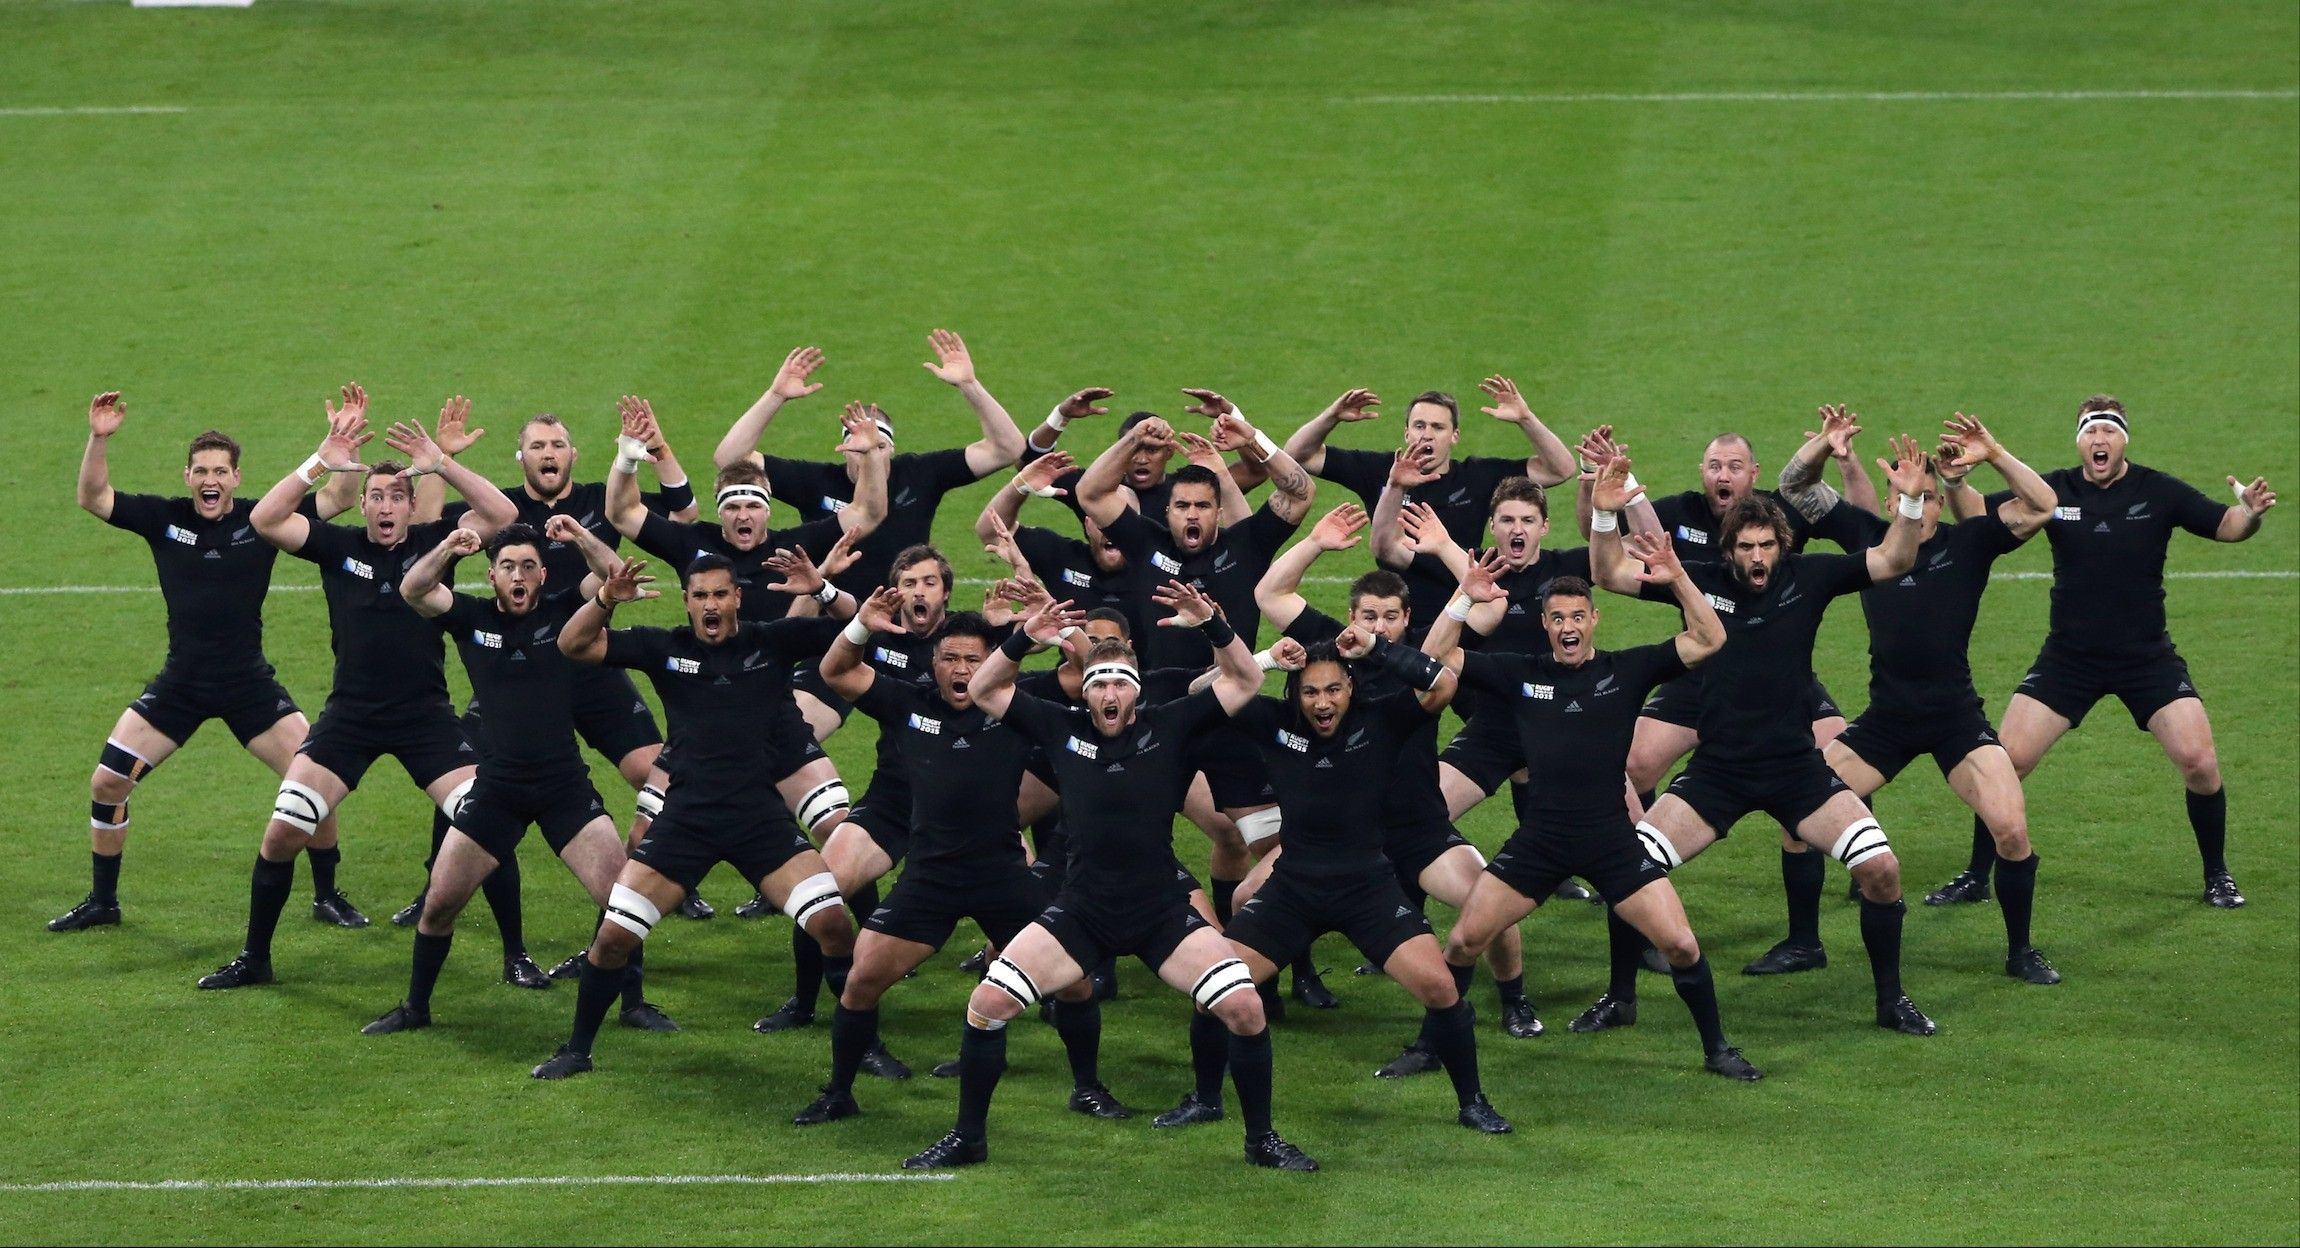 Pin by Shoshanna Ilysse on All Blacks (And other rugby